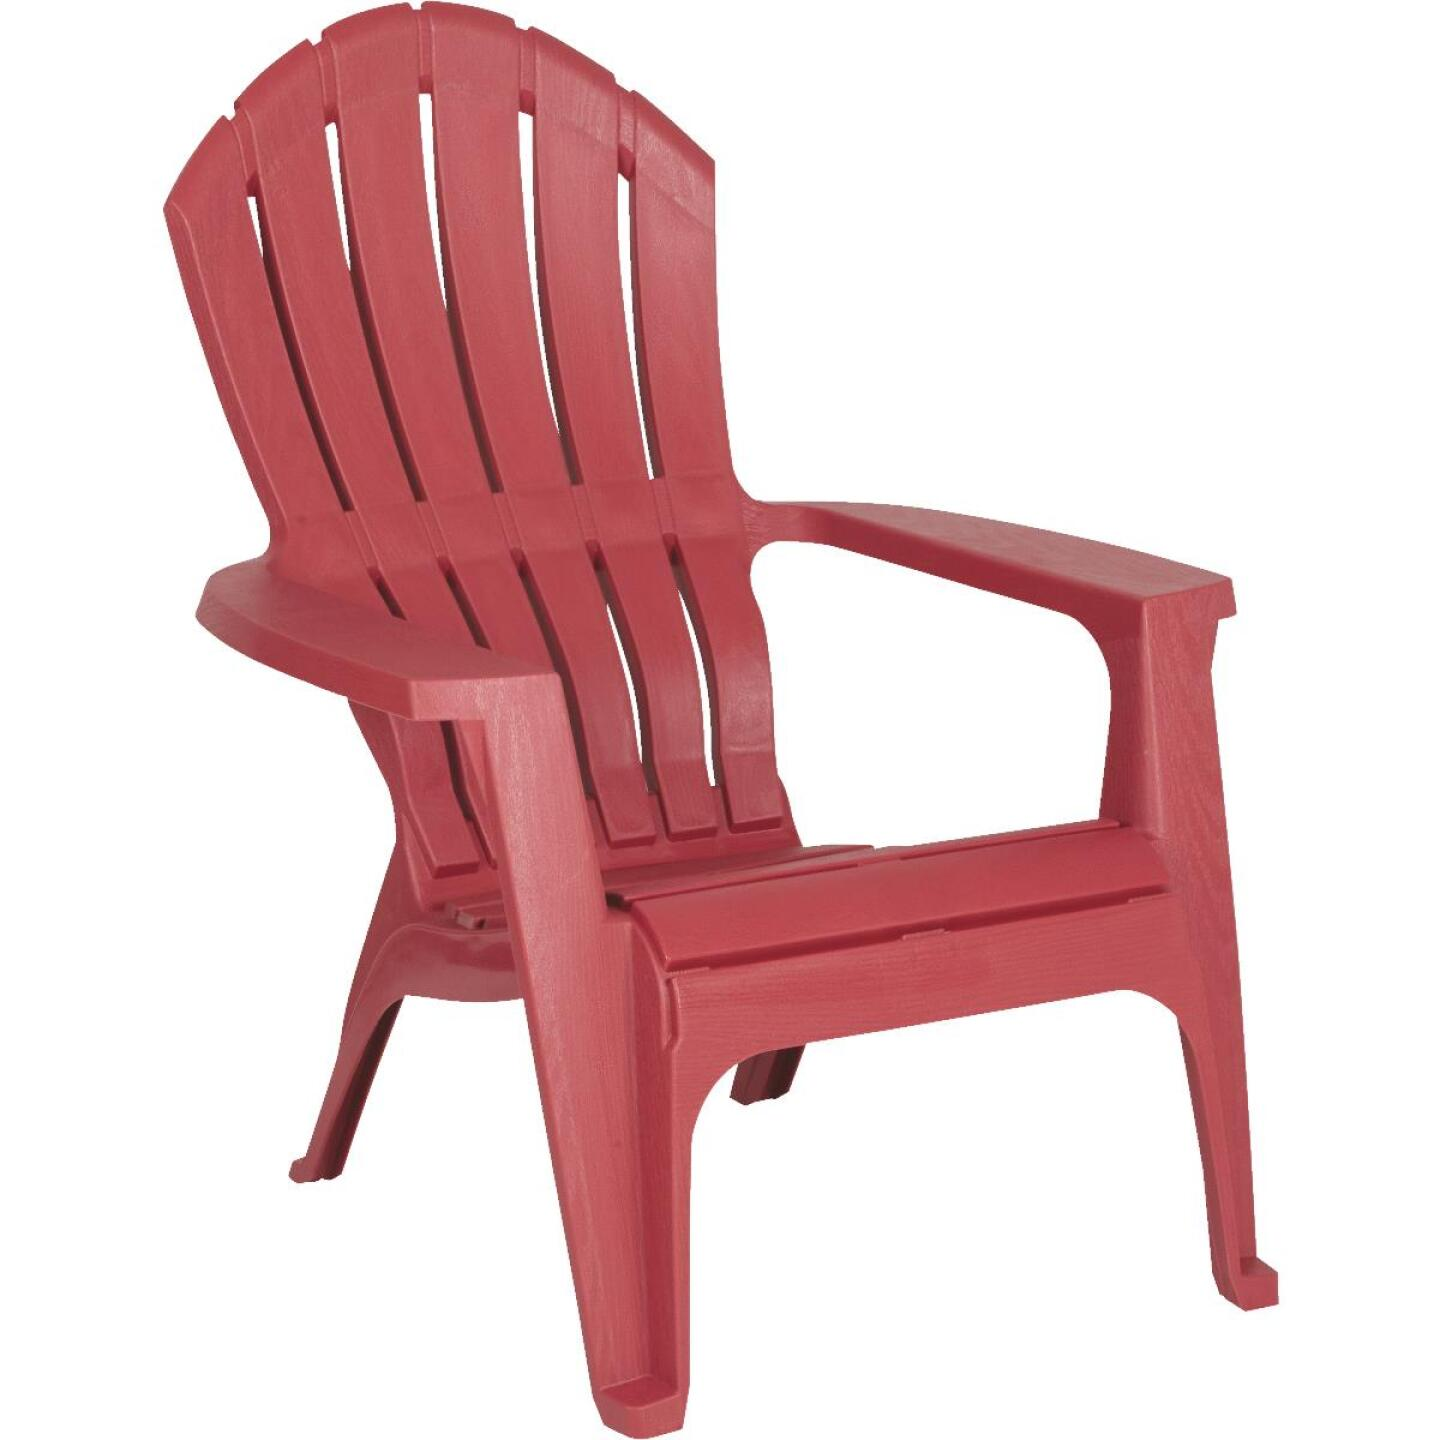 Adams RealComfort Merlot Resin Adirondack Chair Image 1